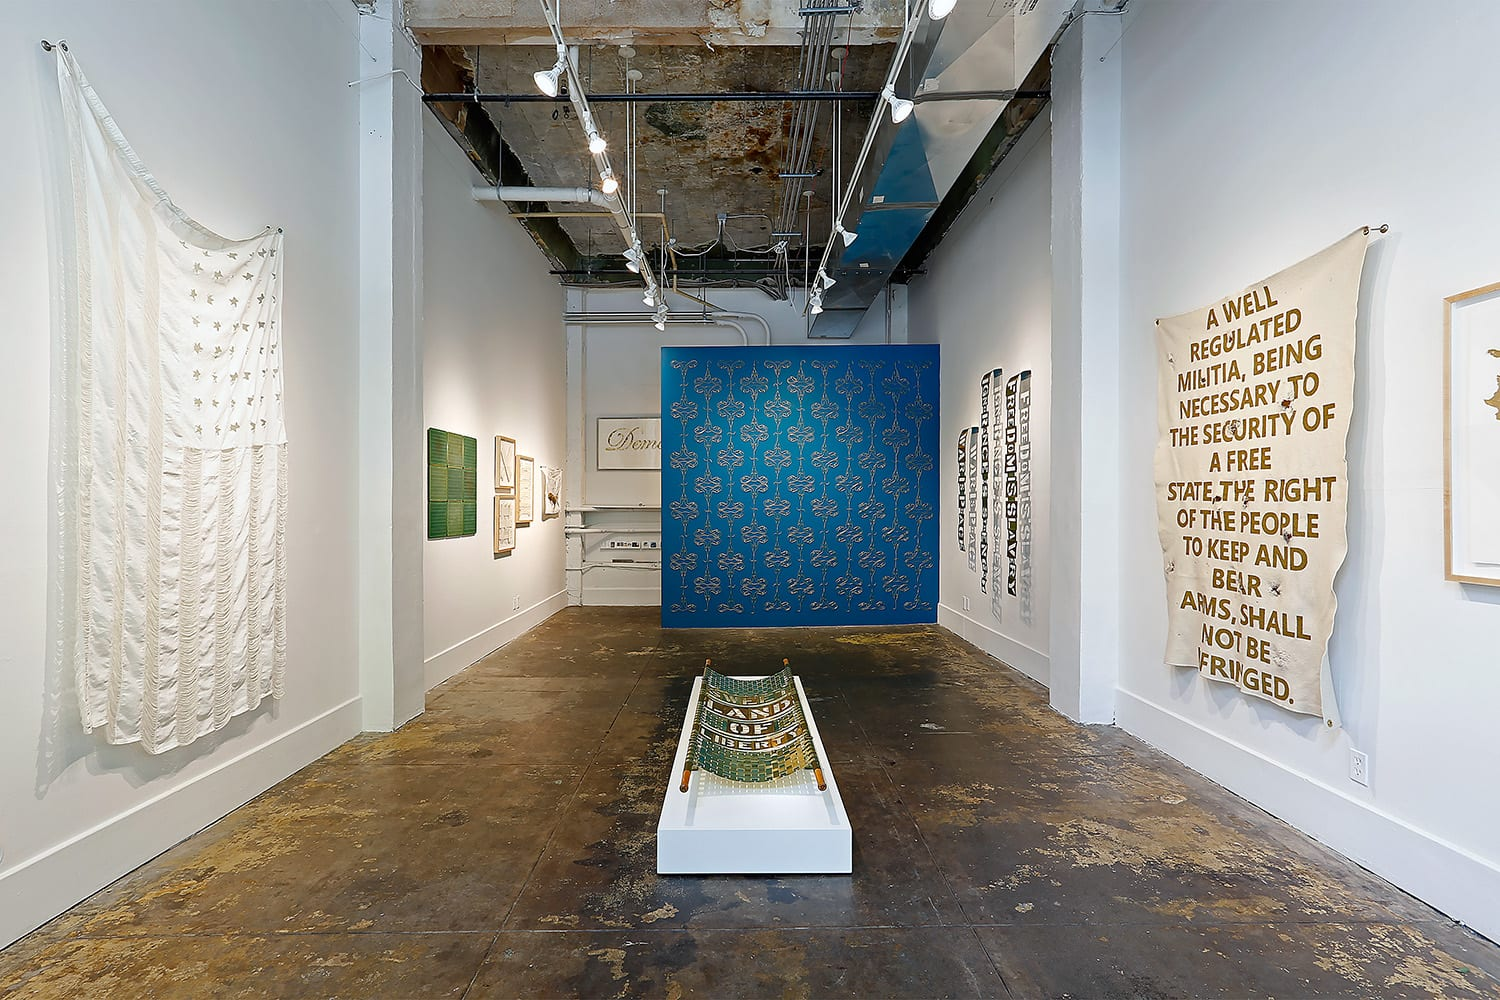 Full Installation Shot - Pattern Recognition